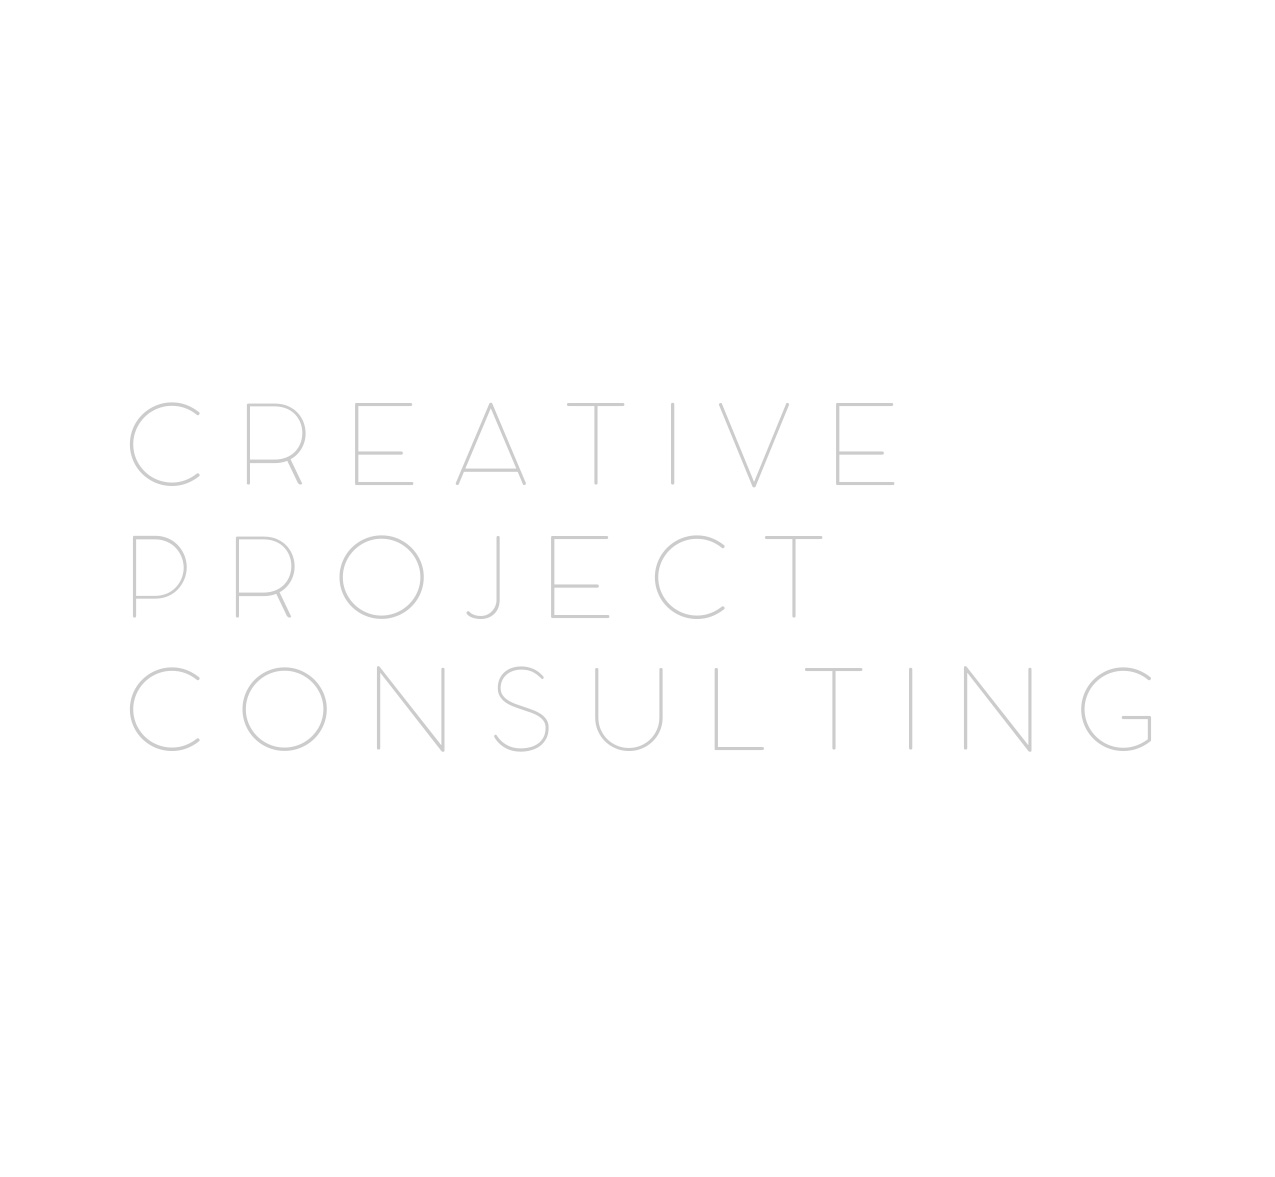 creative consulting.jpg